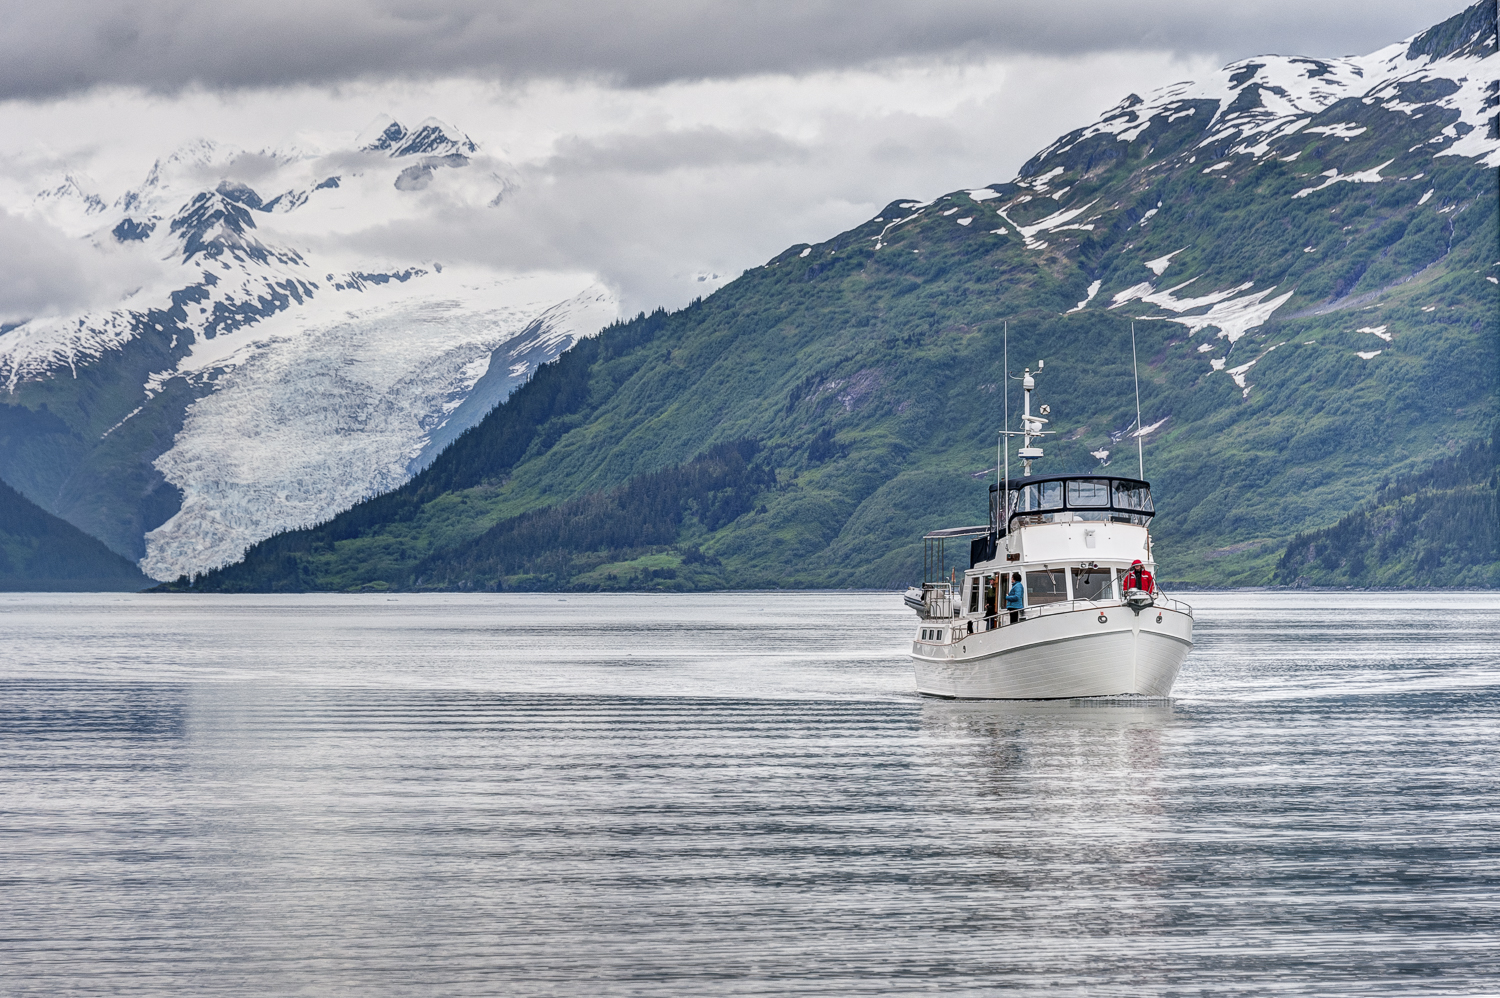 """Kathy Cox on the bow of her boat,  Telita , with the Coxe Glacier in the background. Only separated by one """"e""""."""